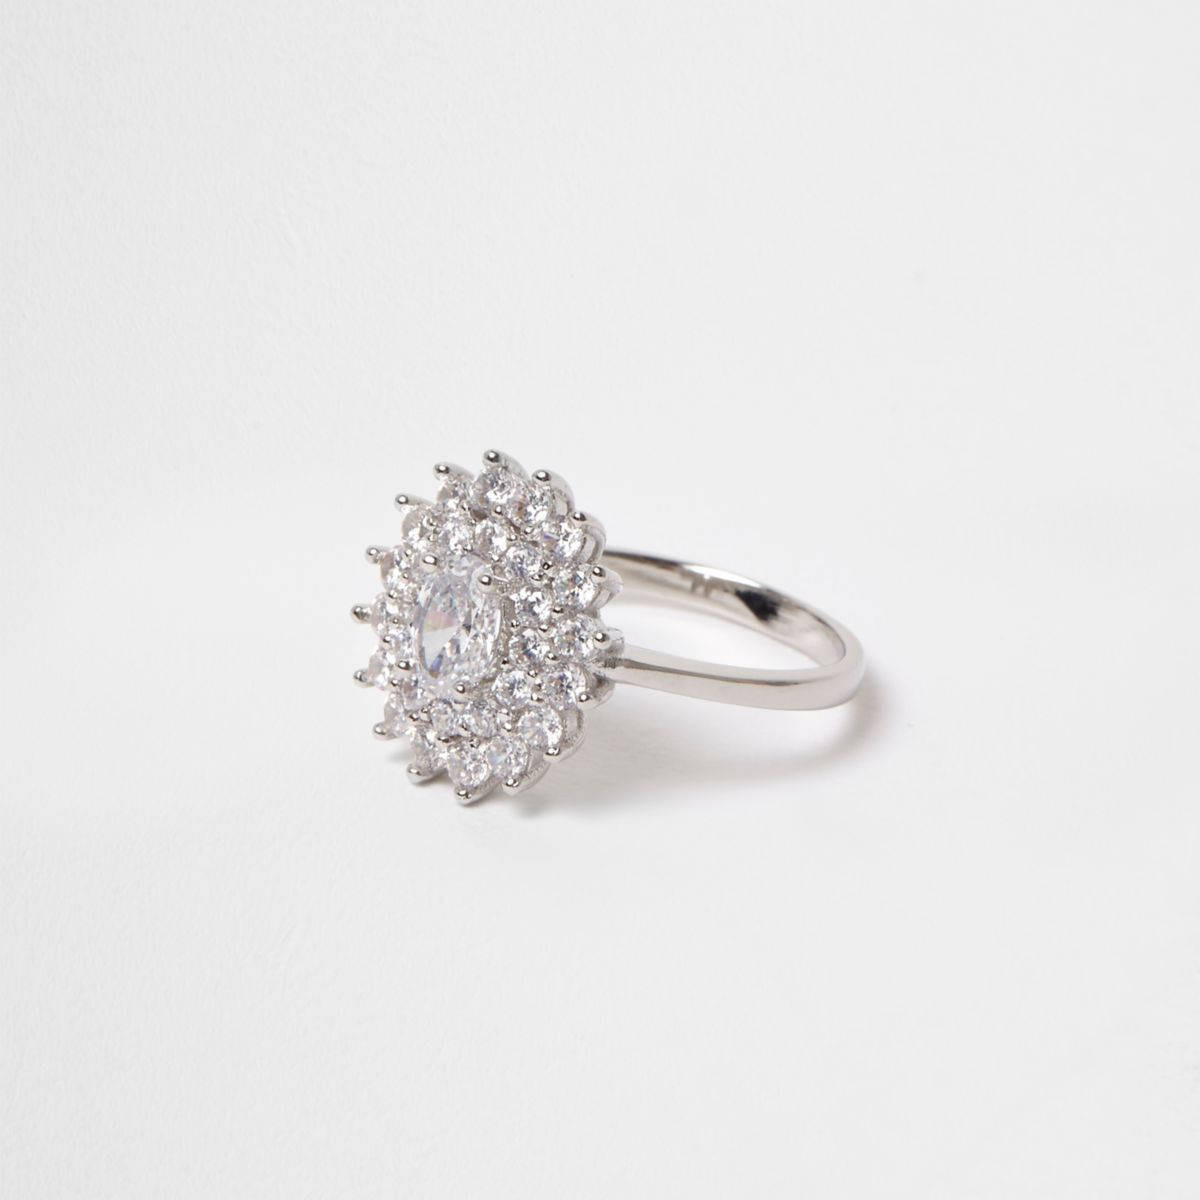 Silver tone cubic zirconia flower ring